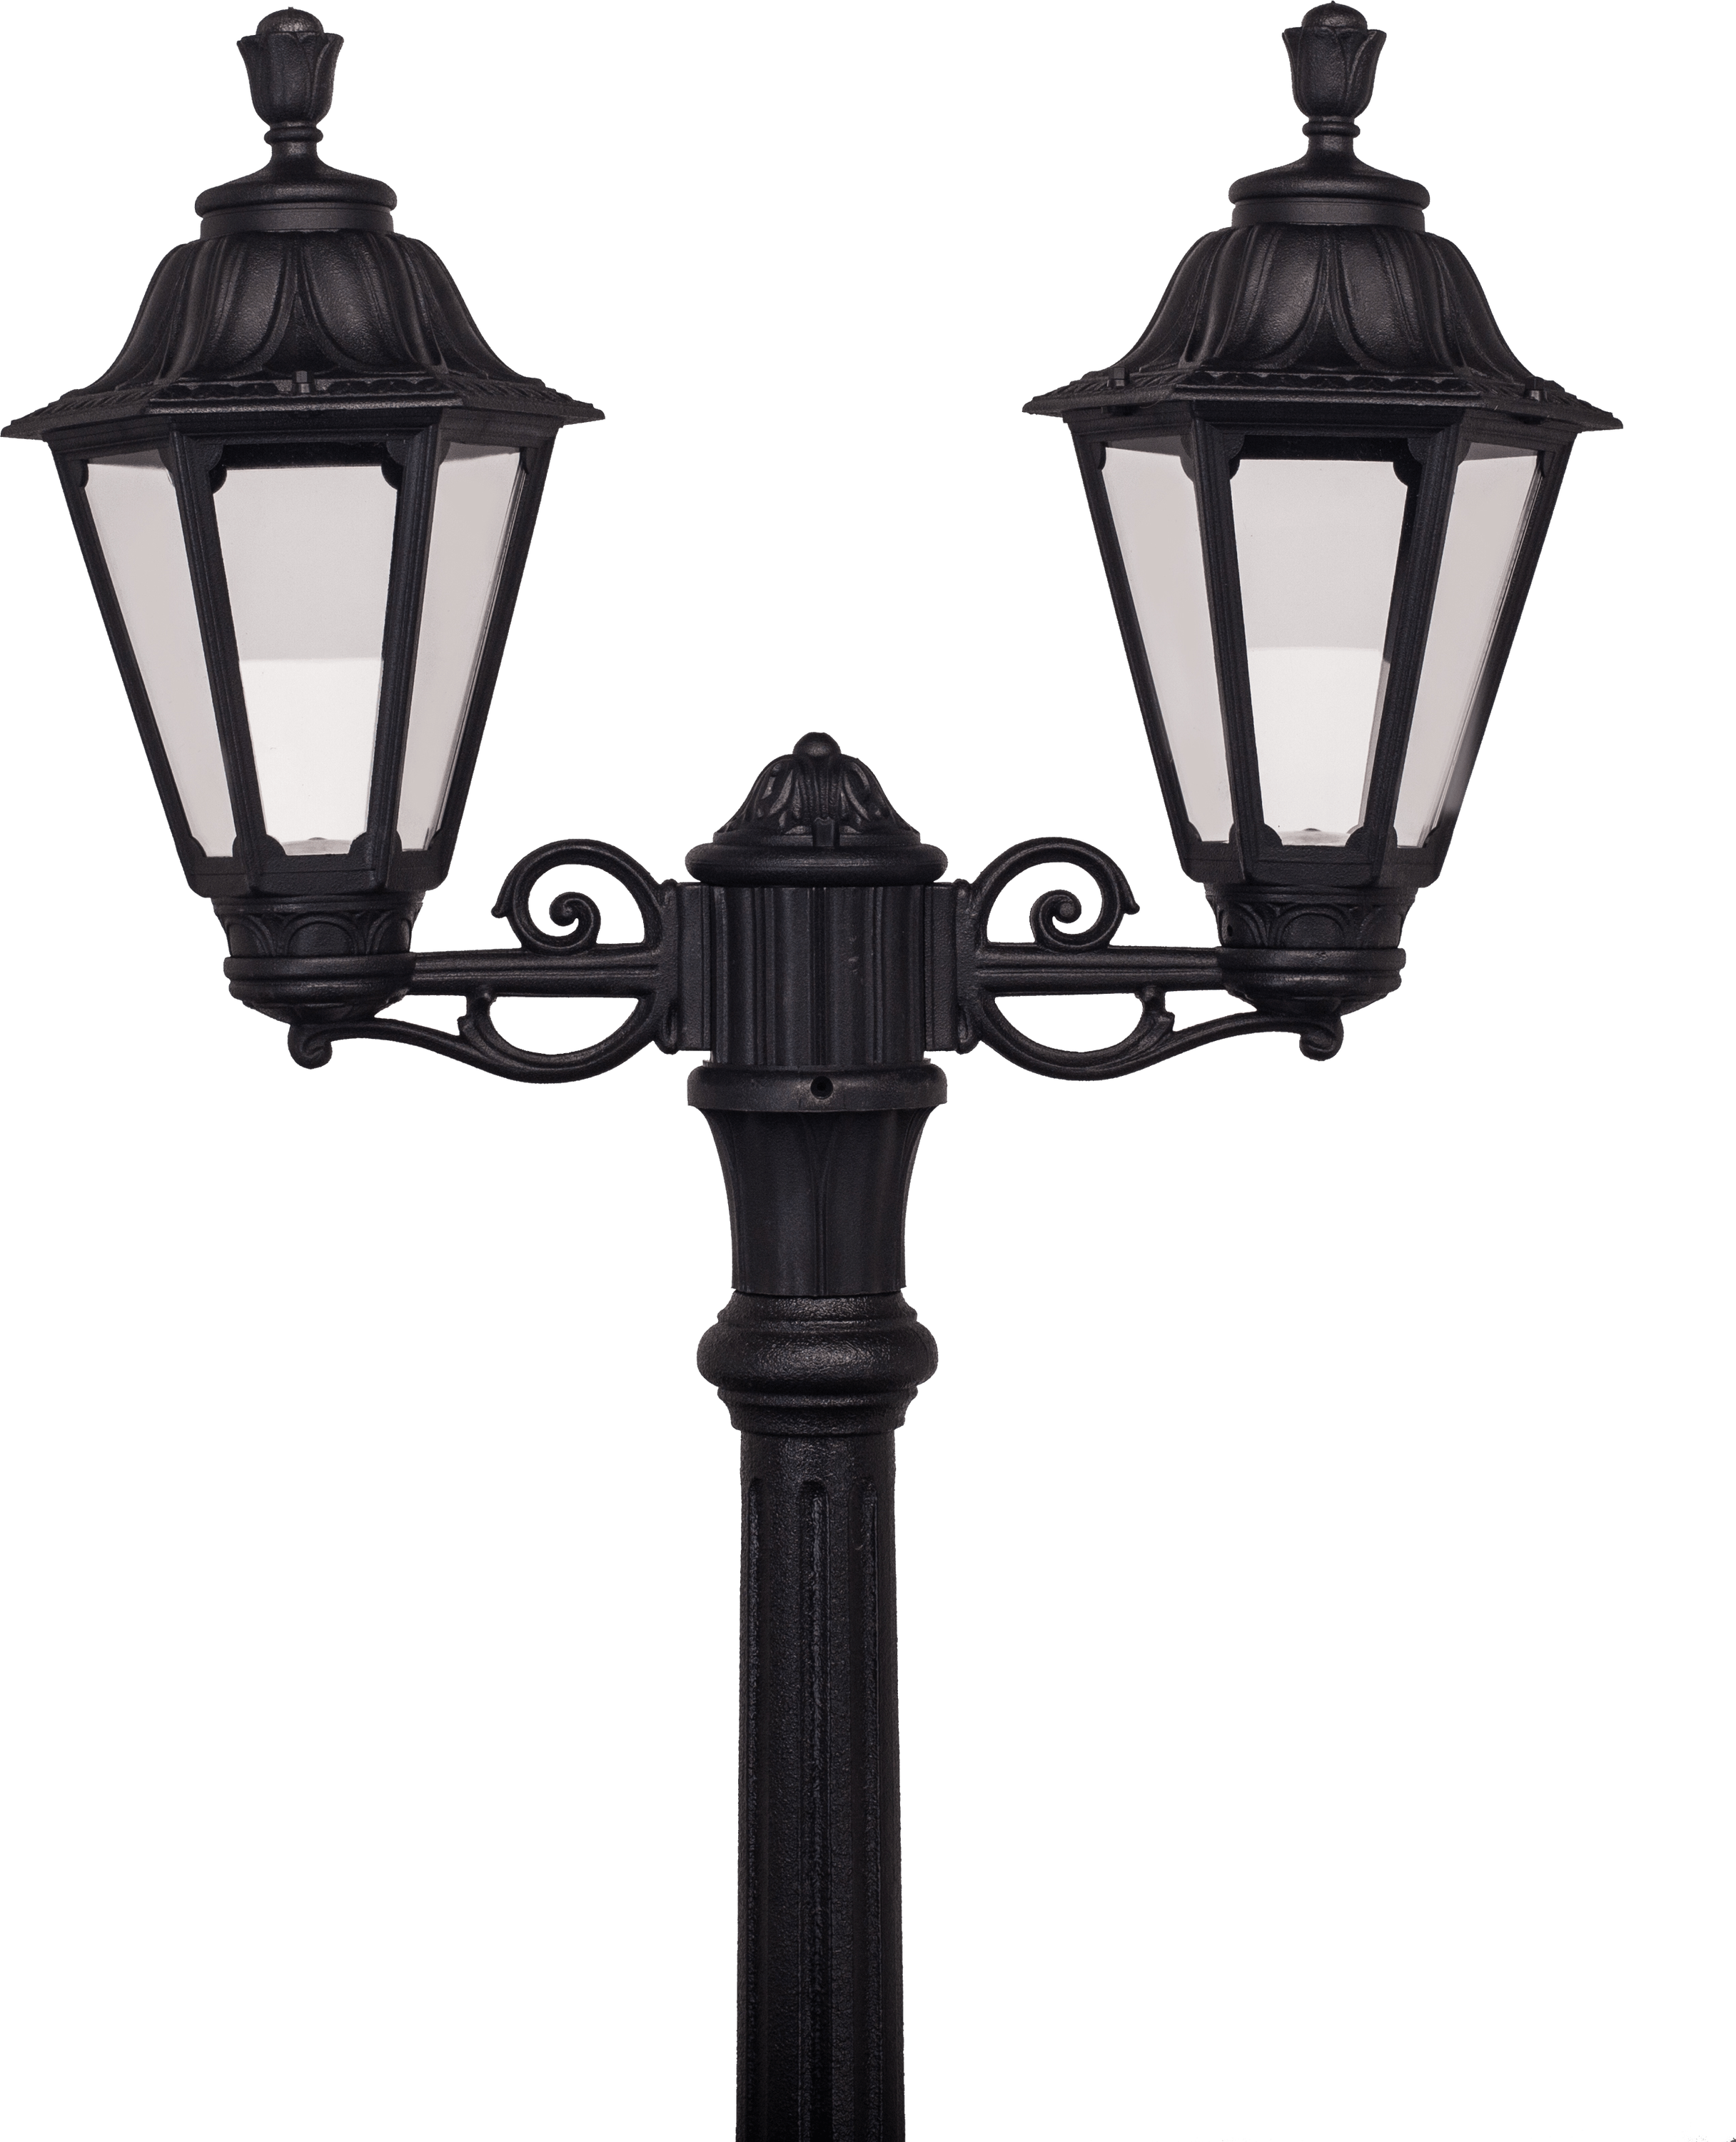 Double Streetlight transparent PNG - StickPNG for Street Lamp Png  174mzq